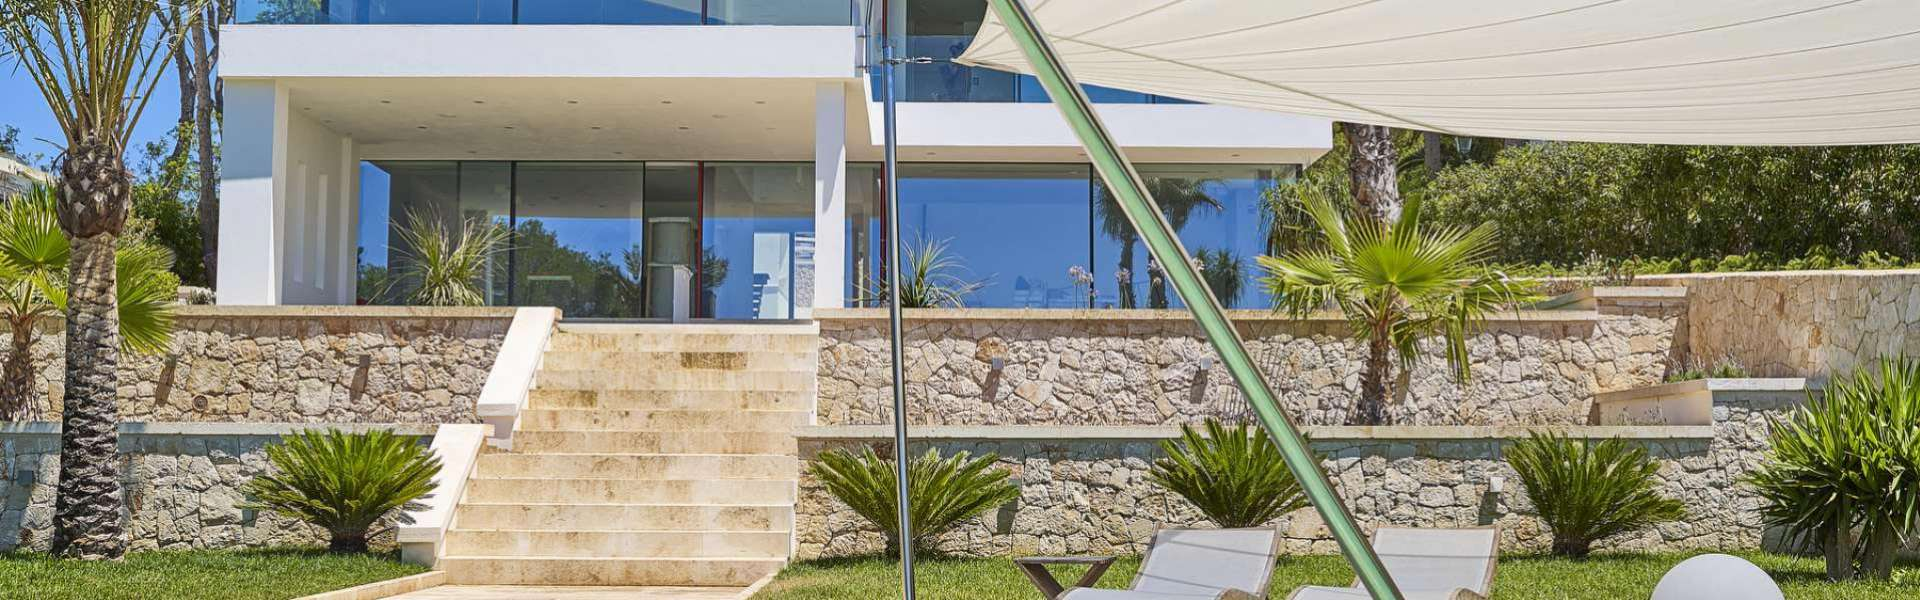 Porto Petro - Modern villa with sea access in exposed position